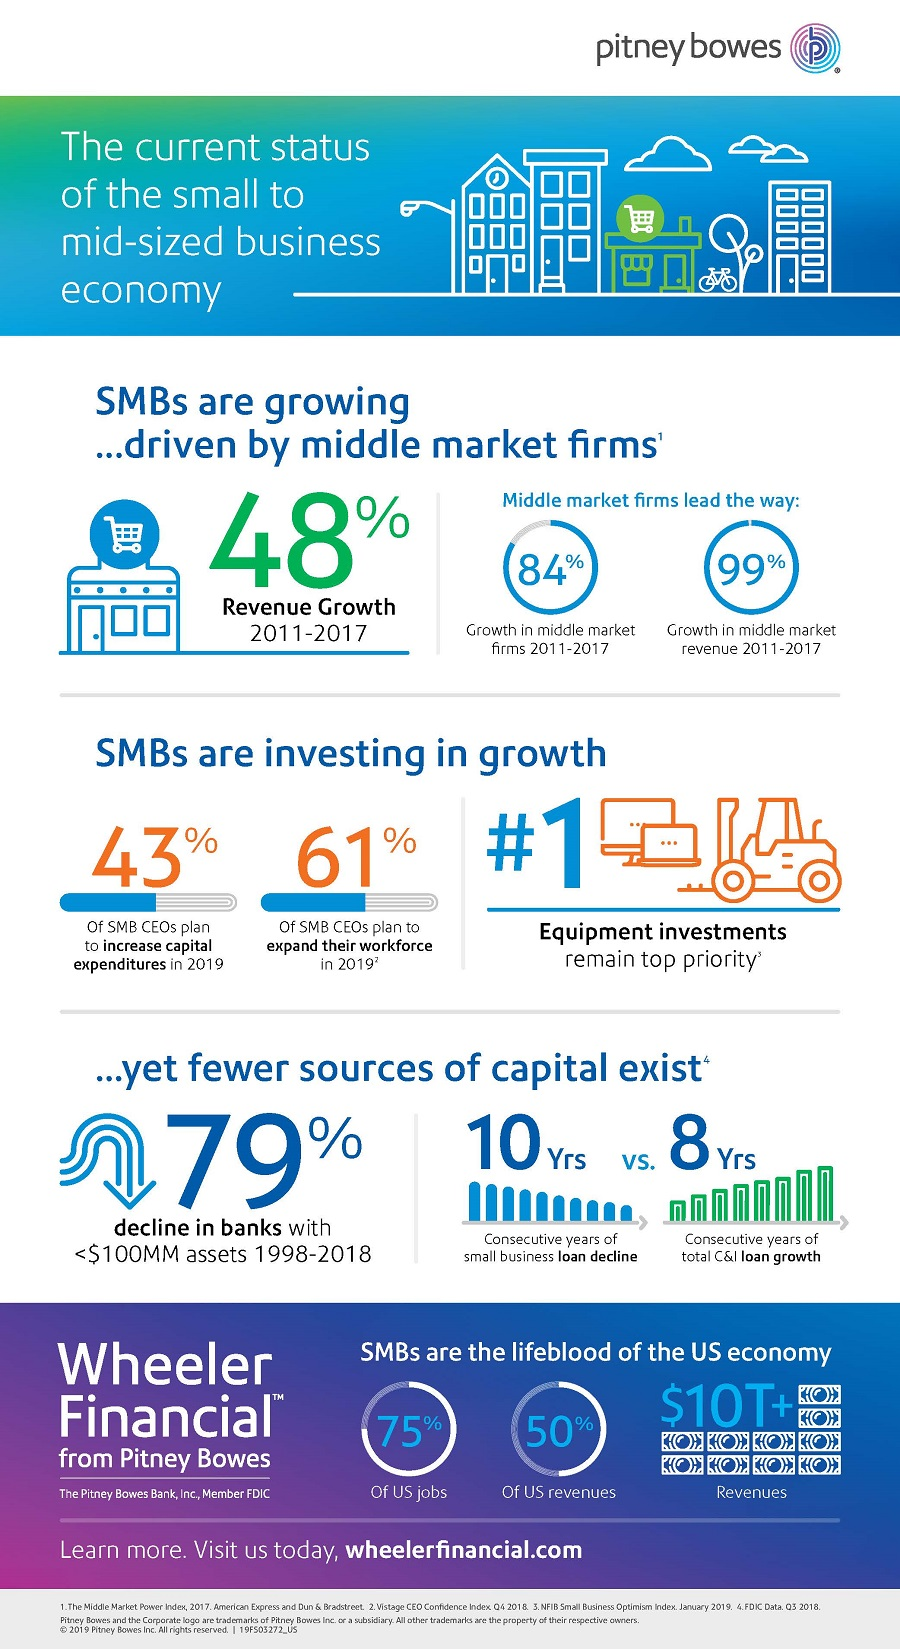 The current status of the small to mid-sized business economy